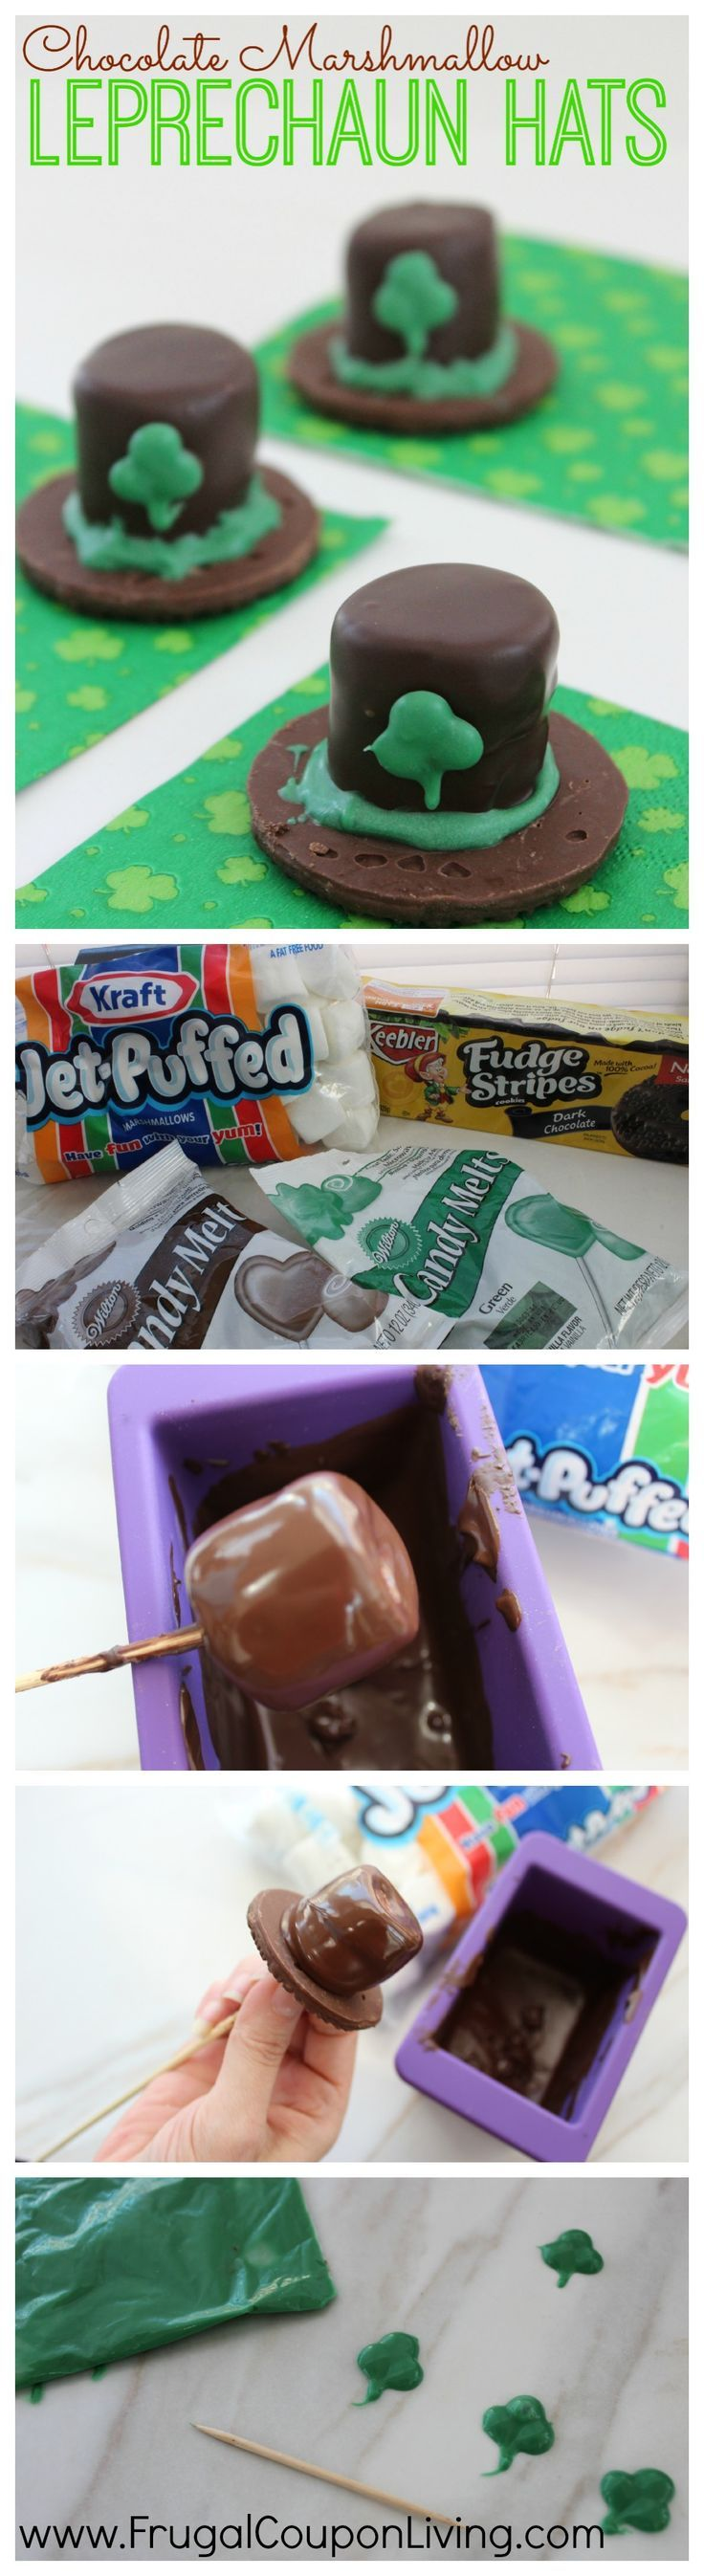 These St. Patrick's Day Chocolate Marshmallow Leprechaun Hats are MUCH easier than you think. Making the handmade shamrocks, only requires coloring, chocolate and a ziploc bag.  For your next St Patrick's Day Recipe and Kids Food Craft, grab this Leprechaun Recipe off Frugal Coupon Living.